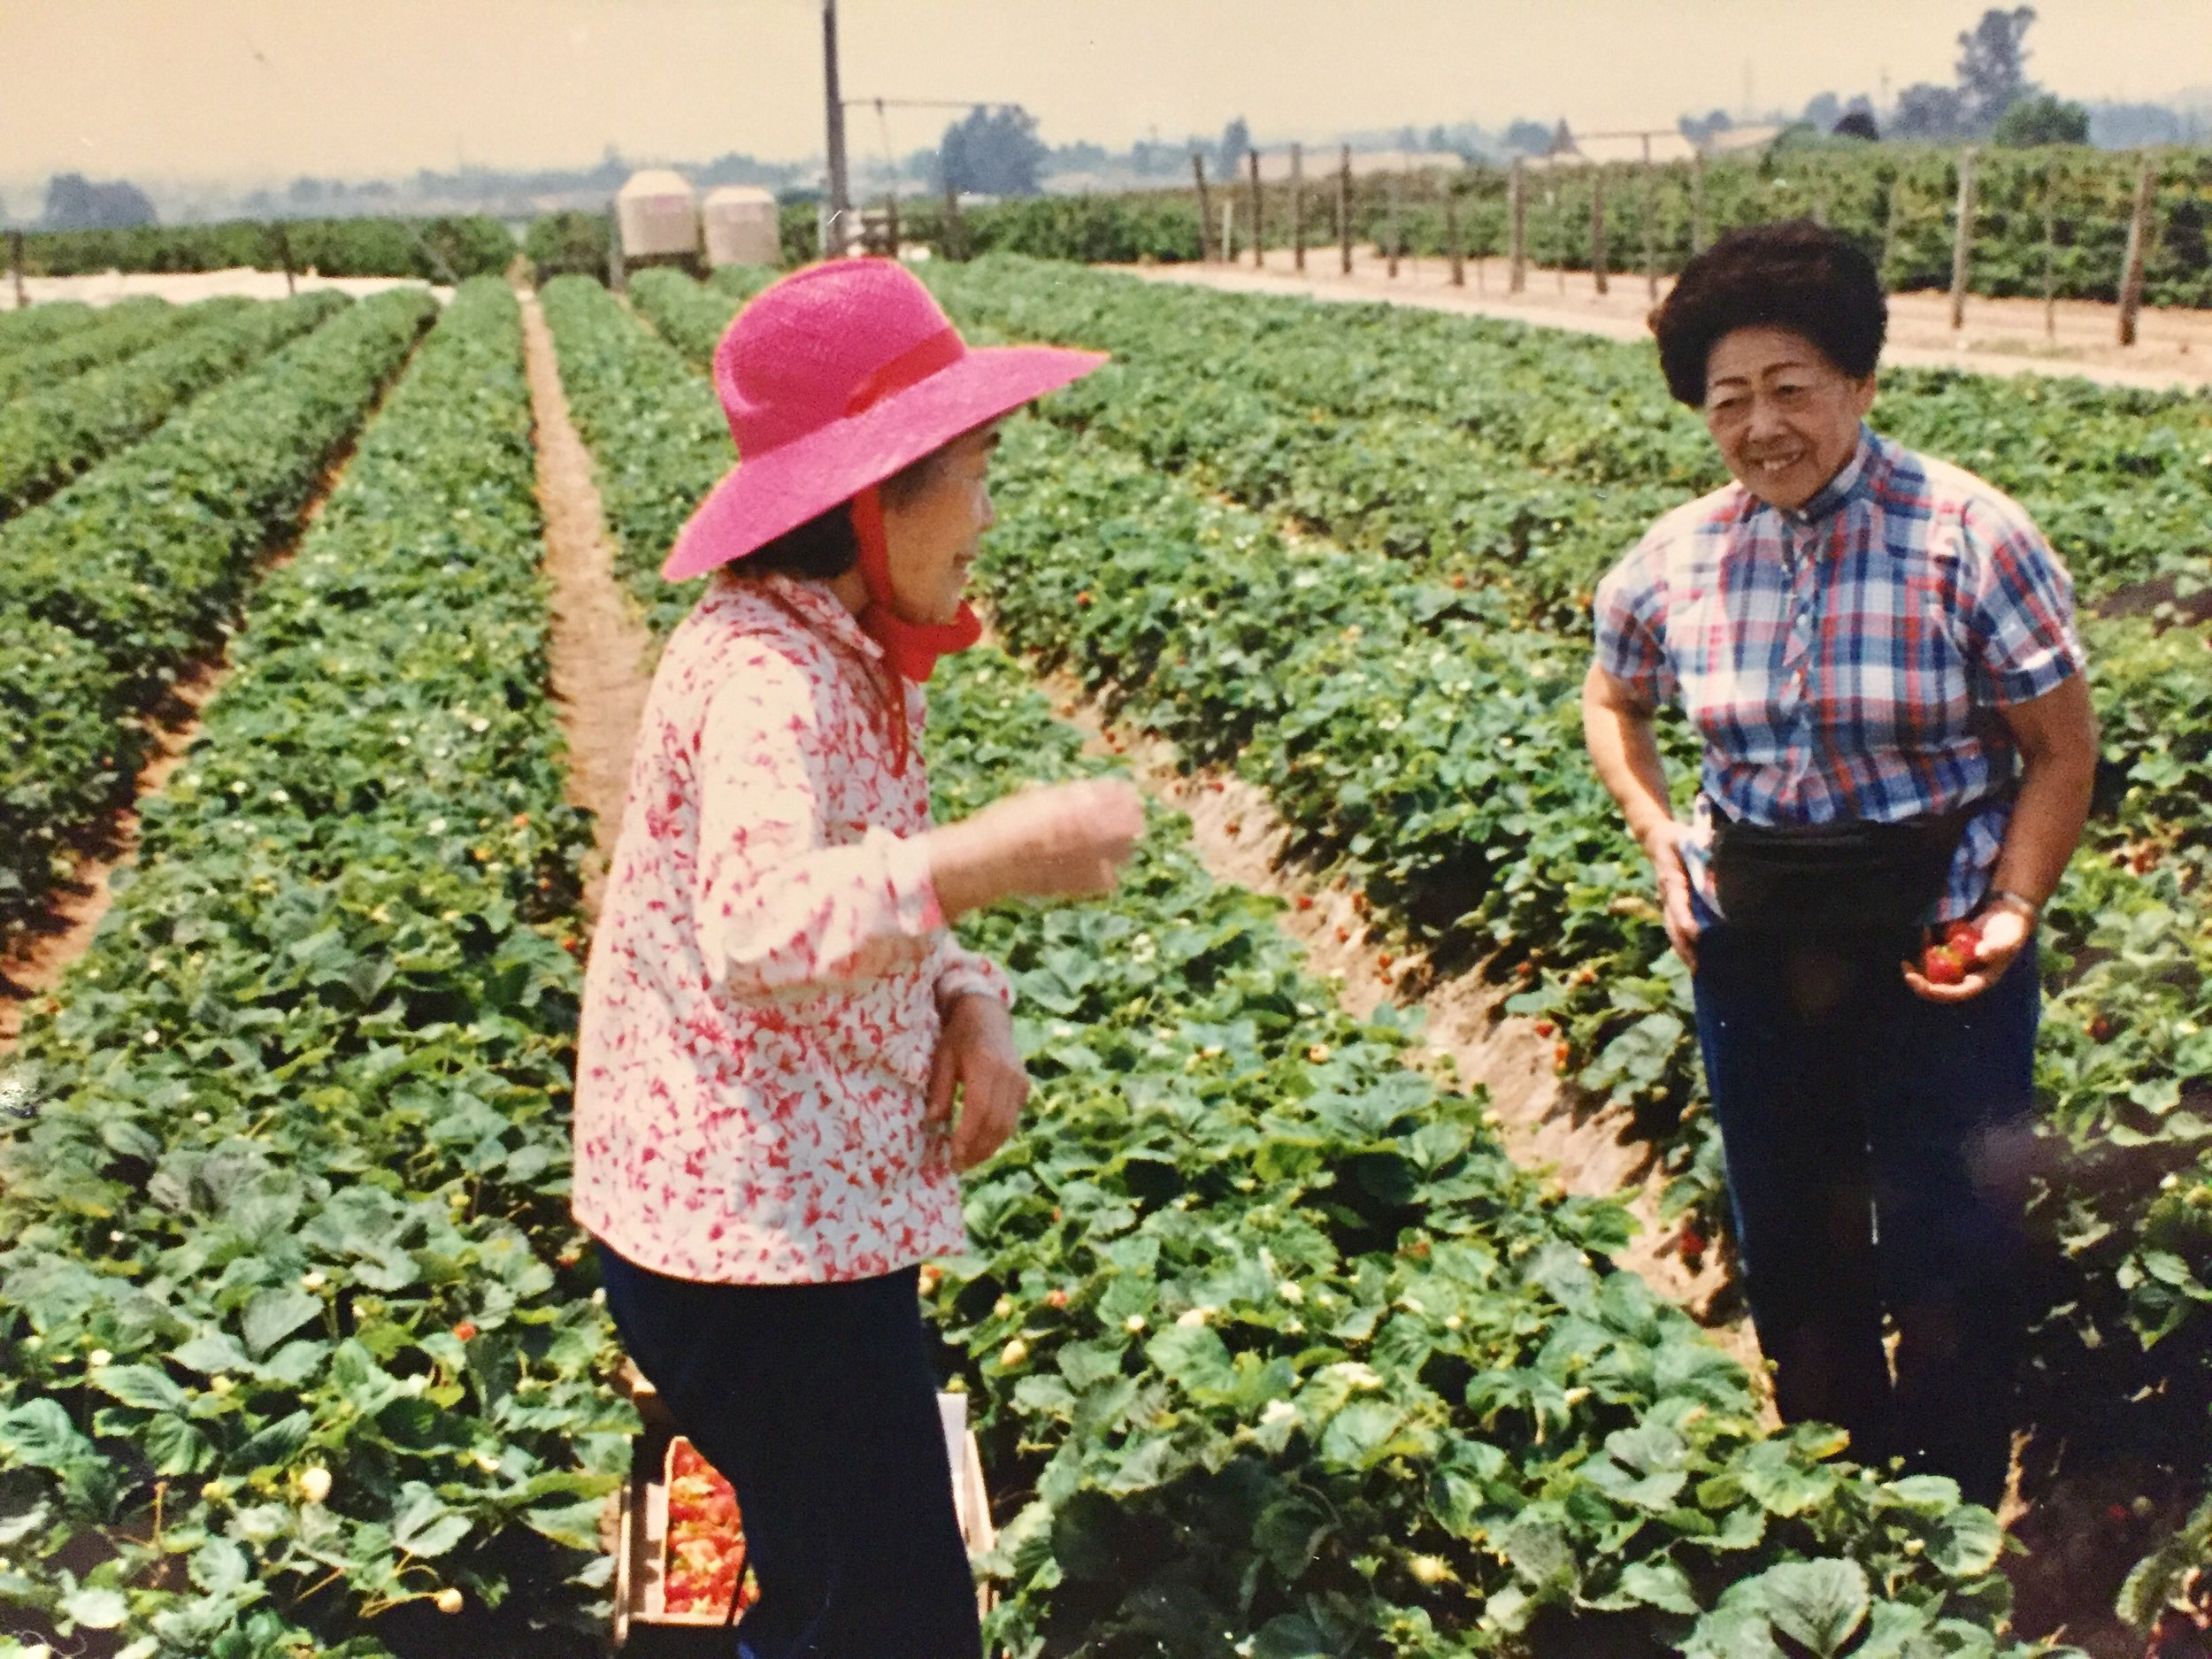 Tommy and her sister June picking strawberries in Watsonville